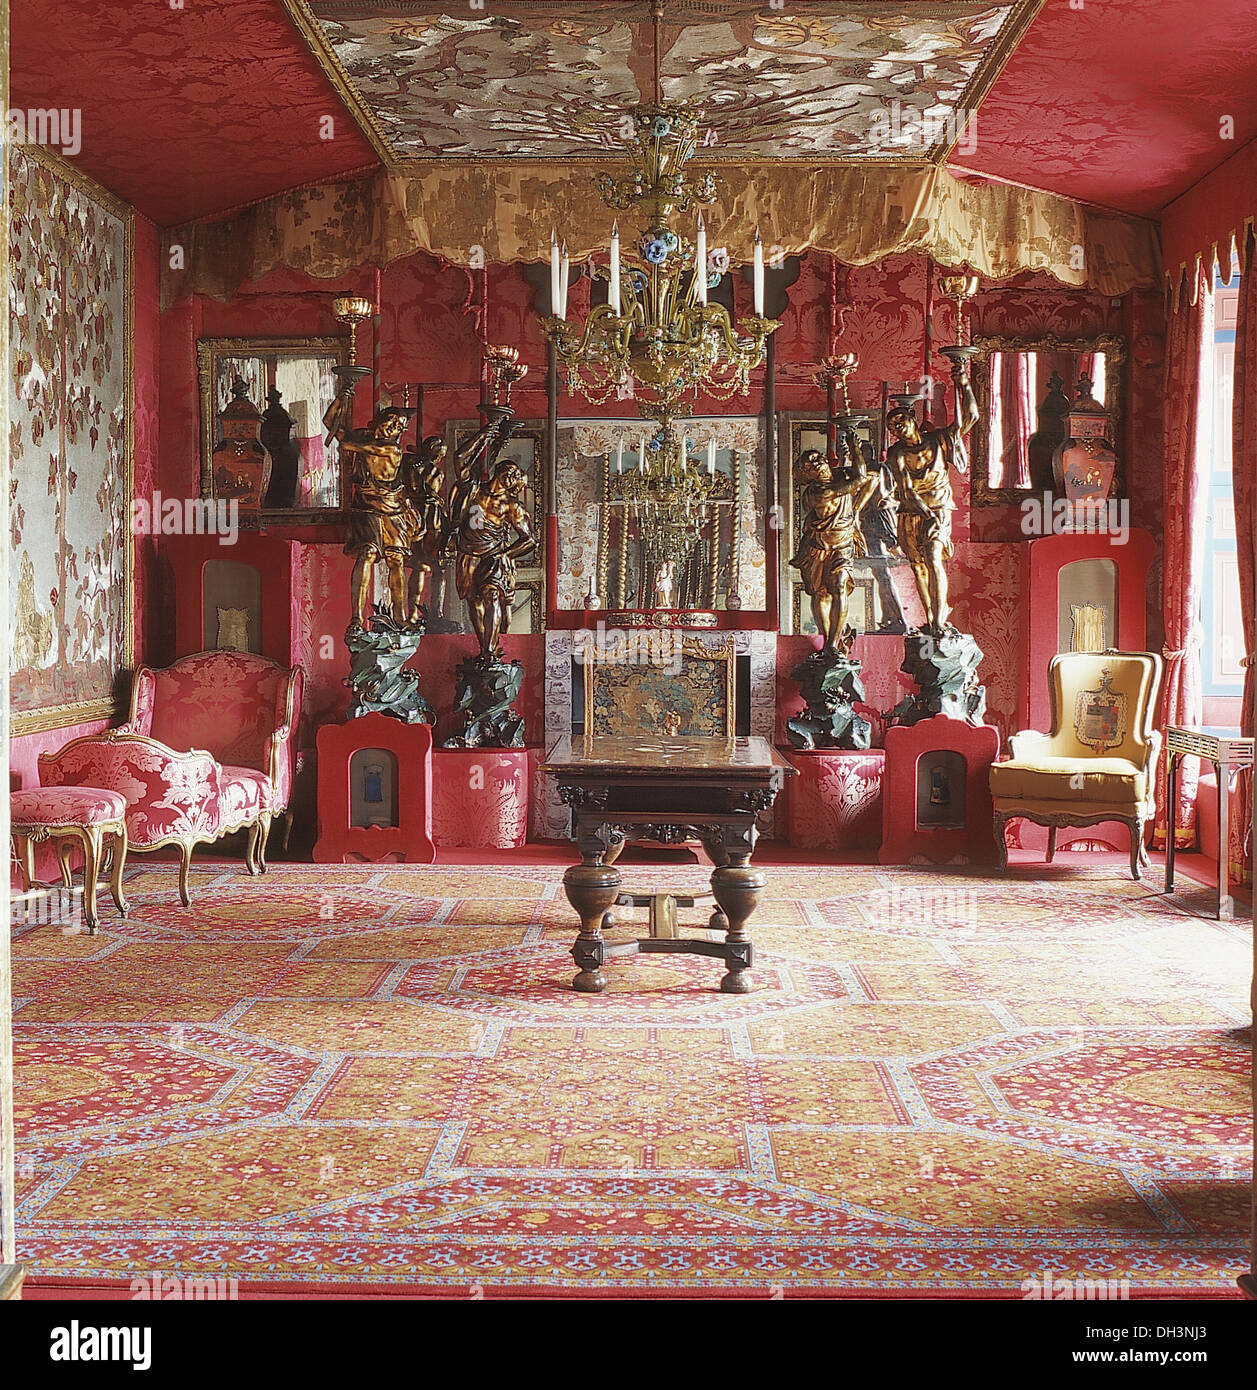 Opulent Red Dining Room With Ornate Ceiling And Gold Drapes And Mirror  Above Fireplace With Blackamoor Statues On Plinths